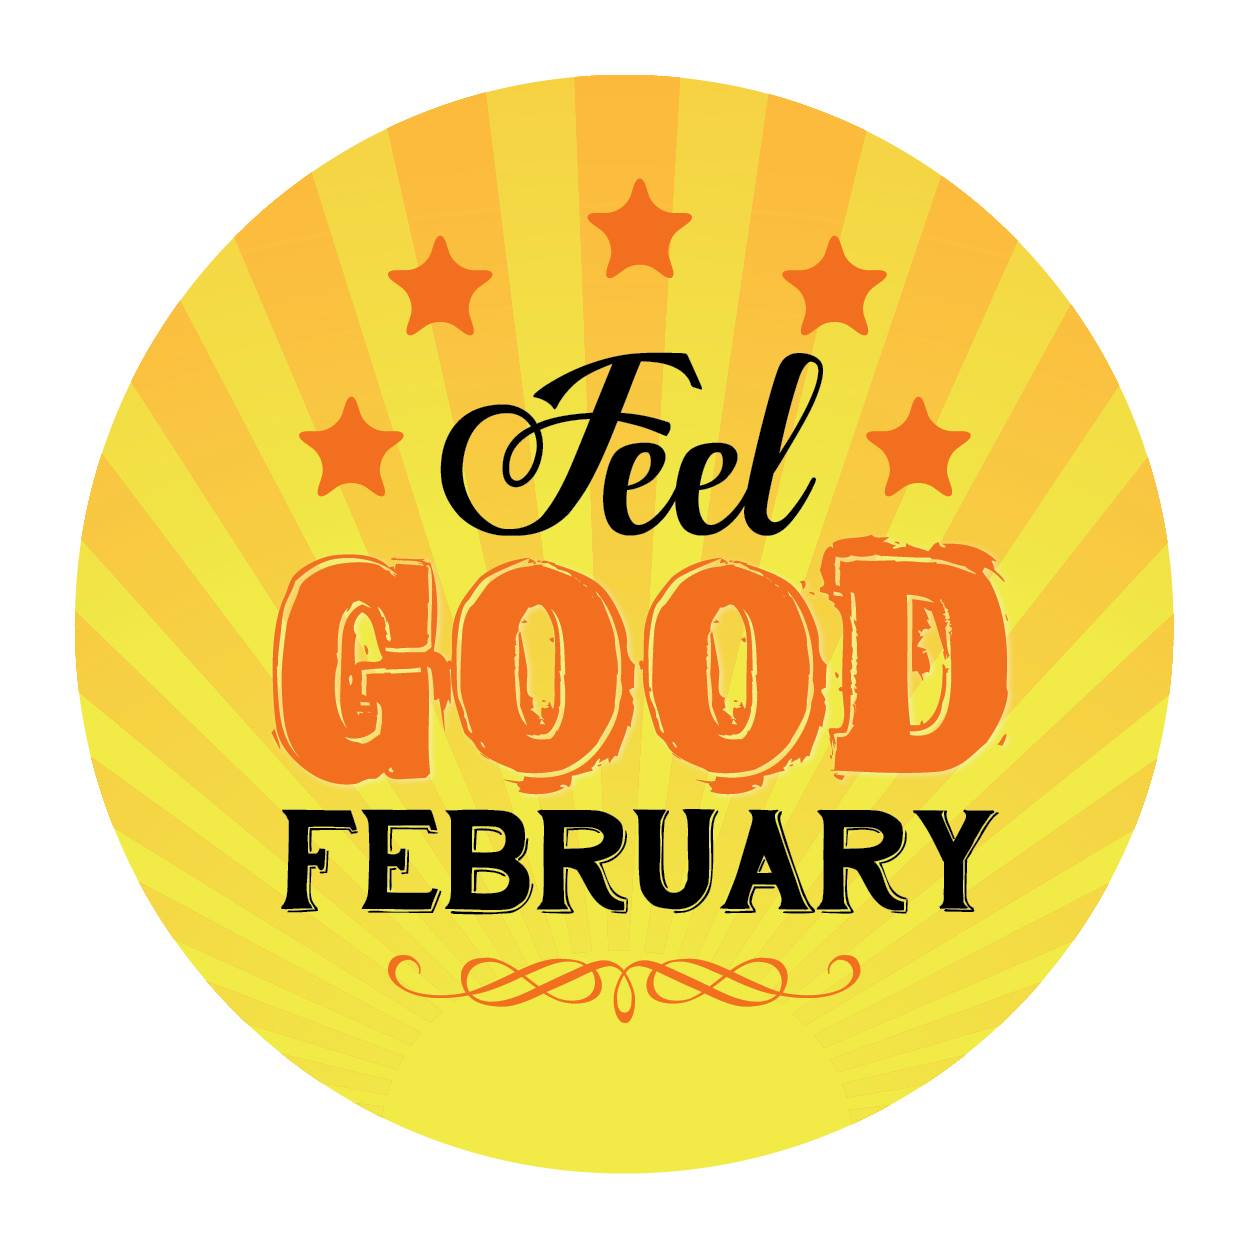 This is the image for Feel Good Feb